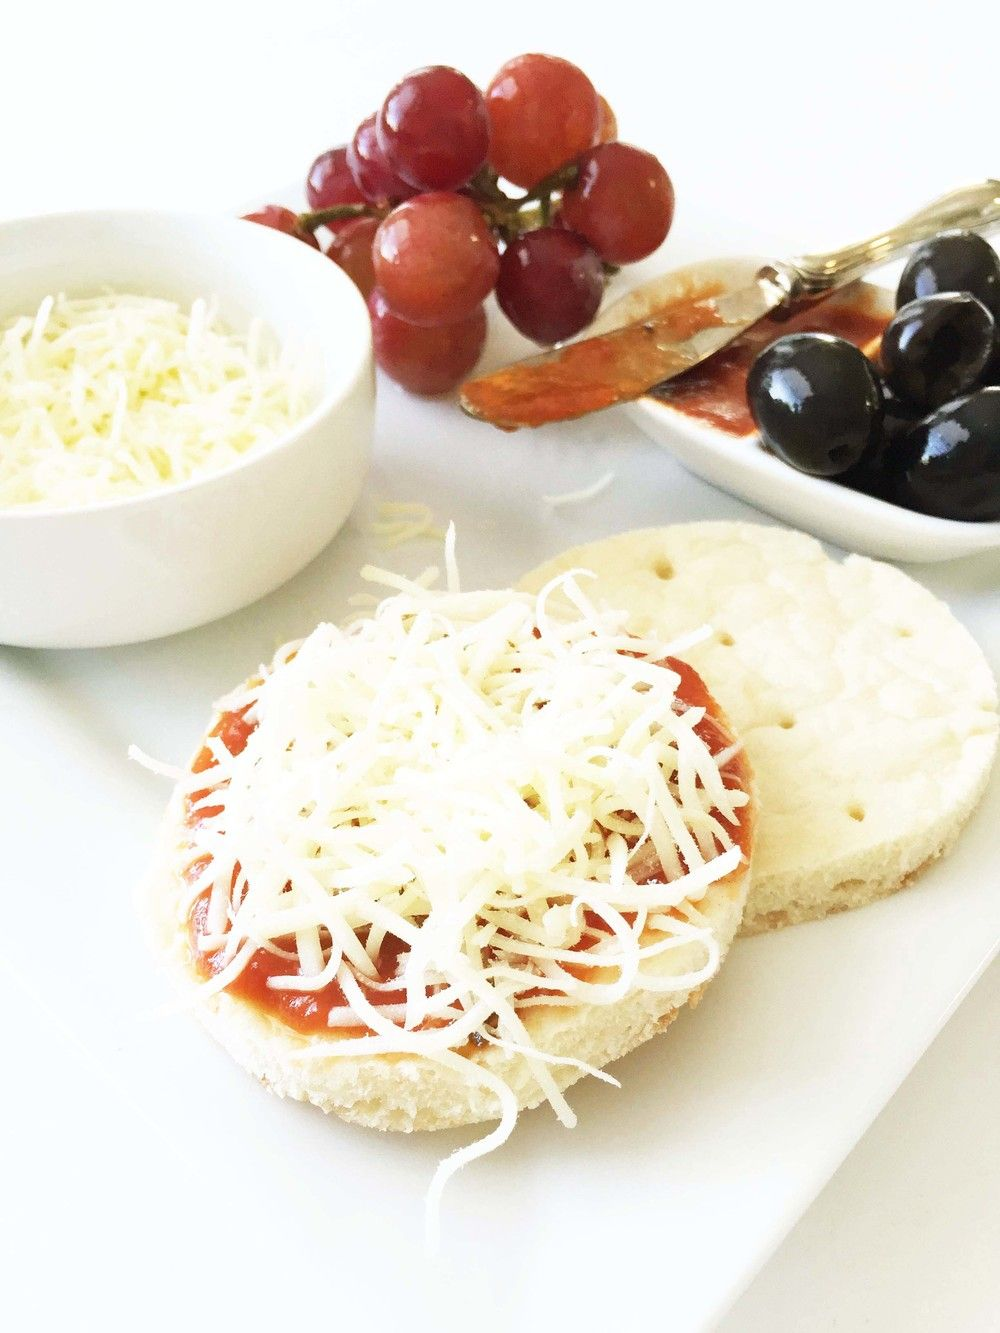 Homemade Healthified Pizza 'Lunchable' — The Skinny Fork